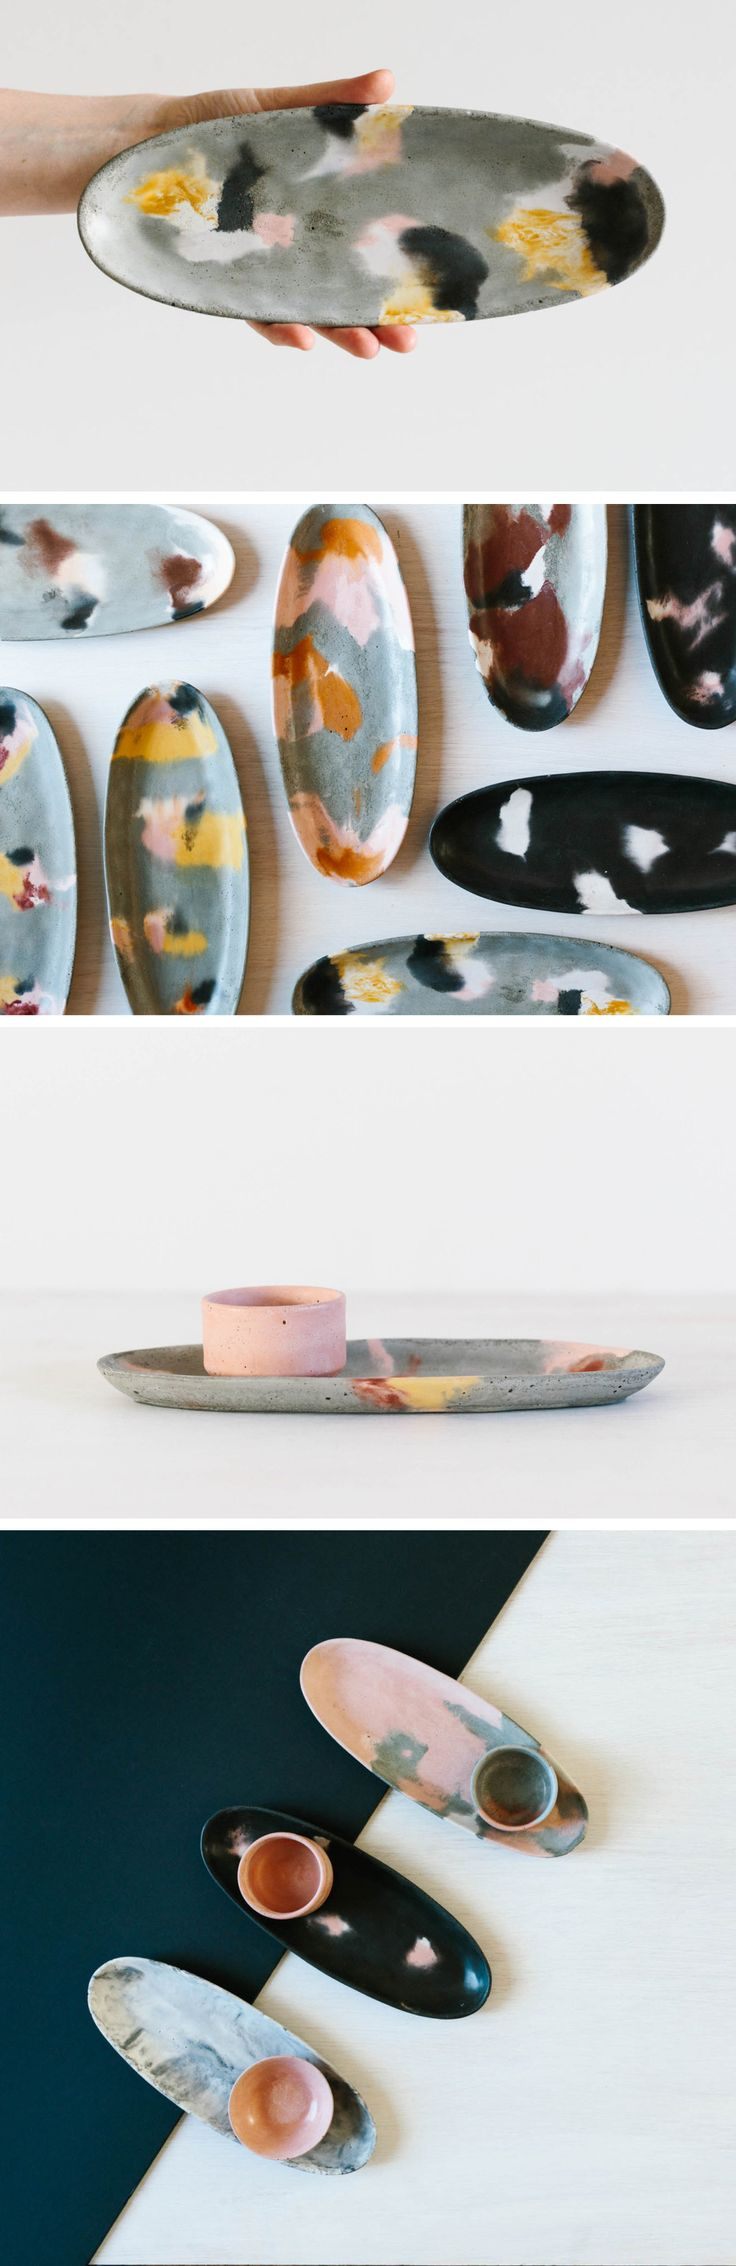 Oval Concrete Platter / Tray / Plate / Dish. Perfect housewarming or Christmas gift for the home. Design lovers / Australian design / object design / product design / Etsy handmade